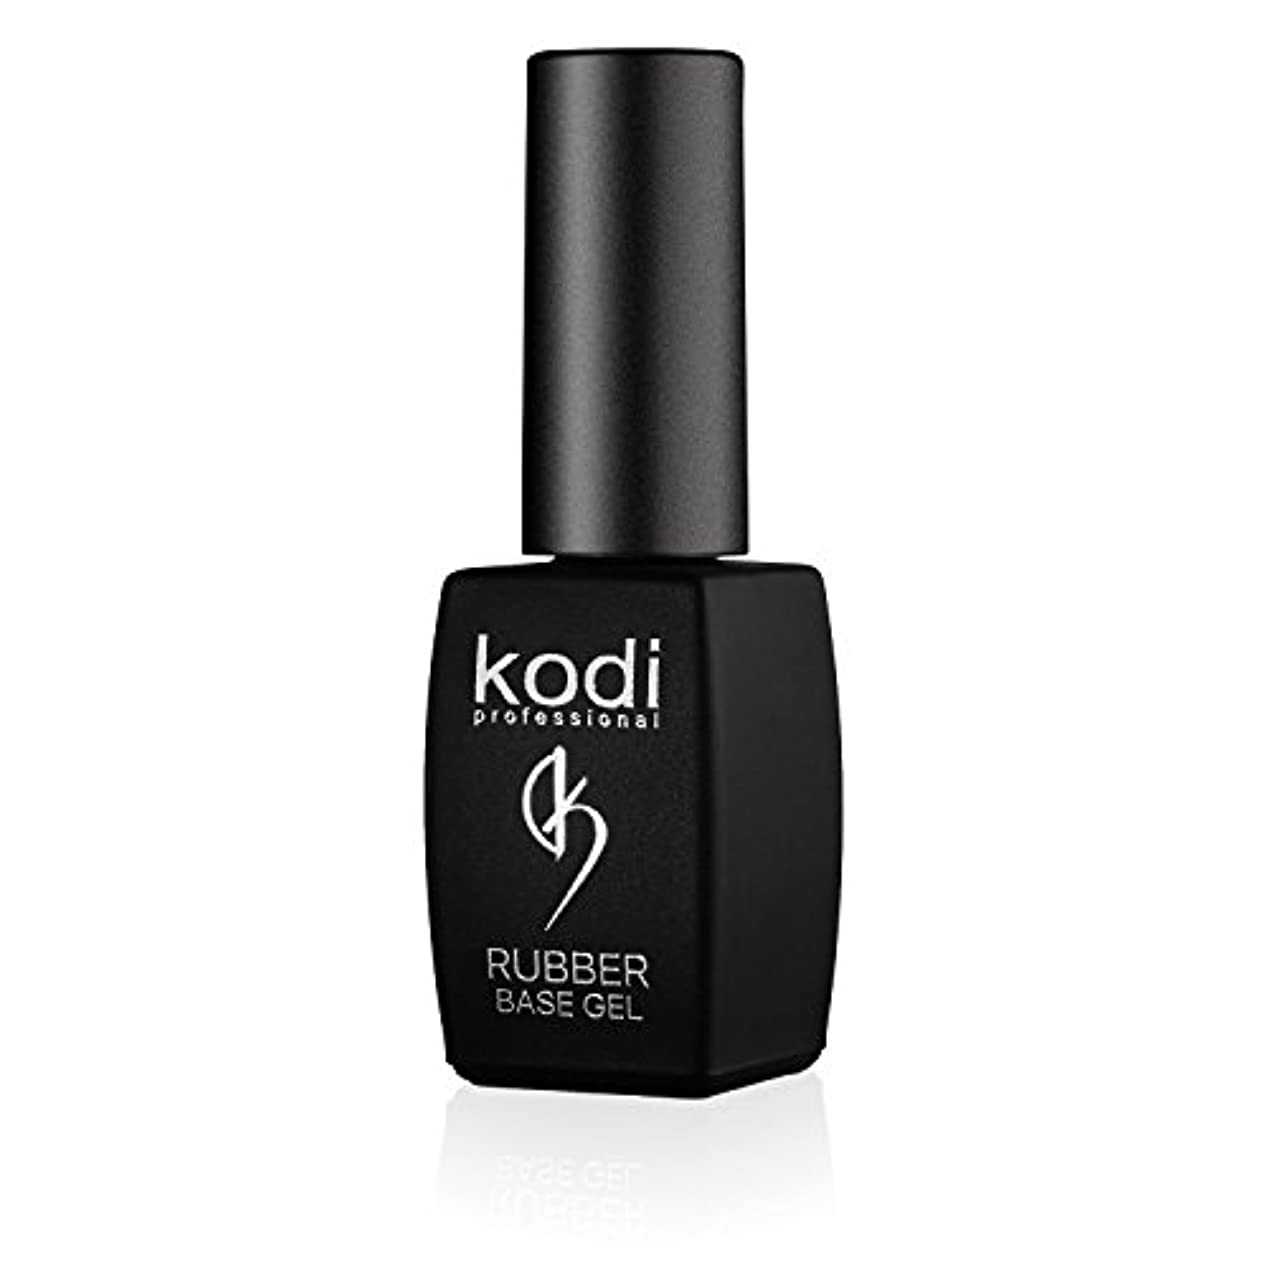 拷問イデオロギーロイヤリティProfessional Rubber Base Gel By Kodi | 8ml 0.27 oz | Soak Off, Polish Fingernails Coat Gel | For Long Lasting...